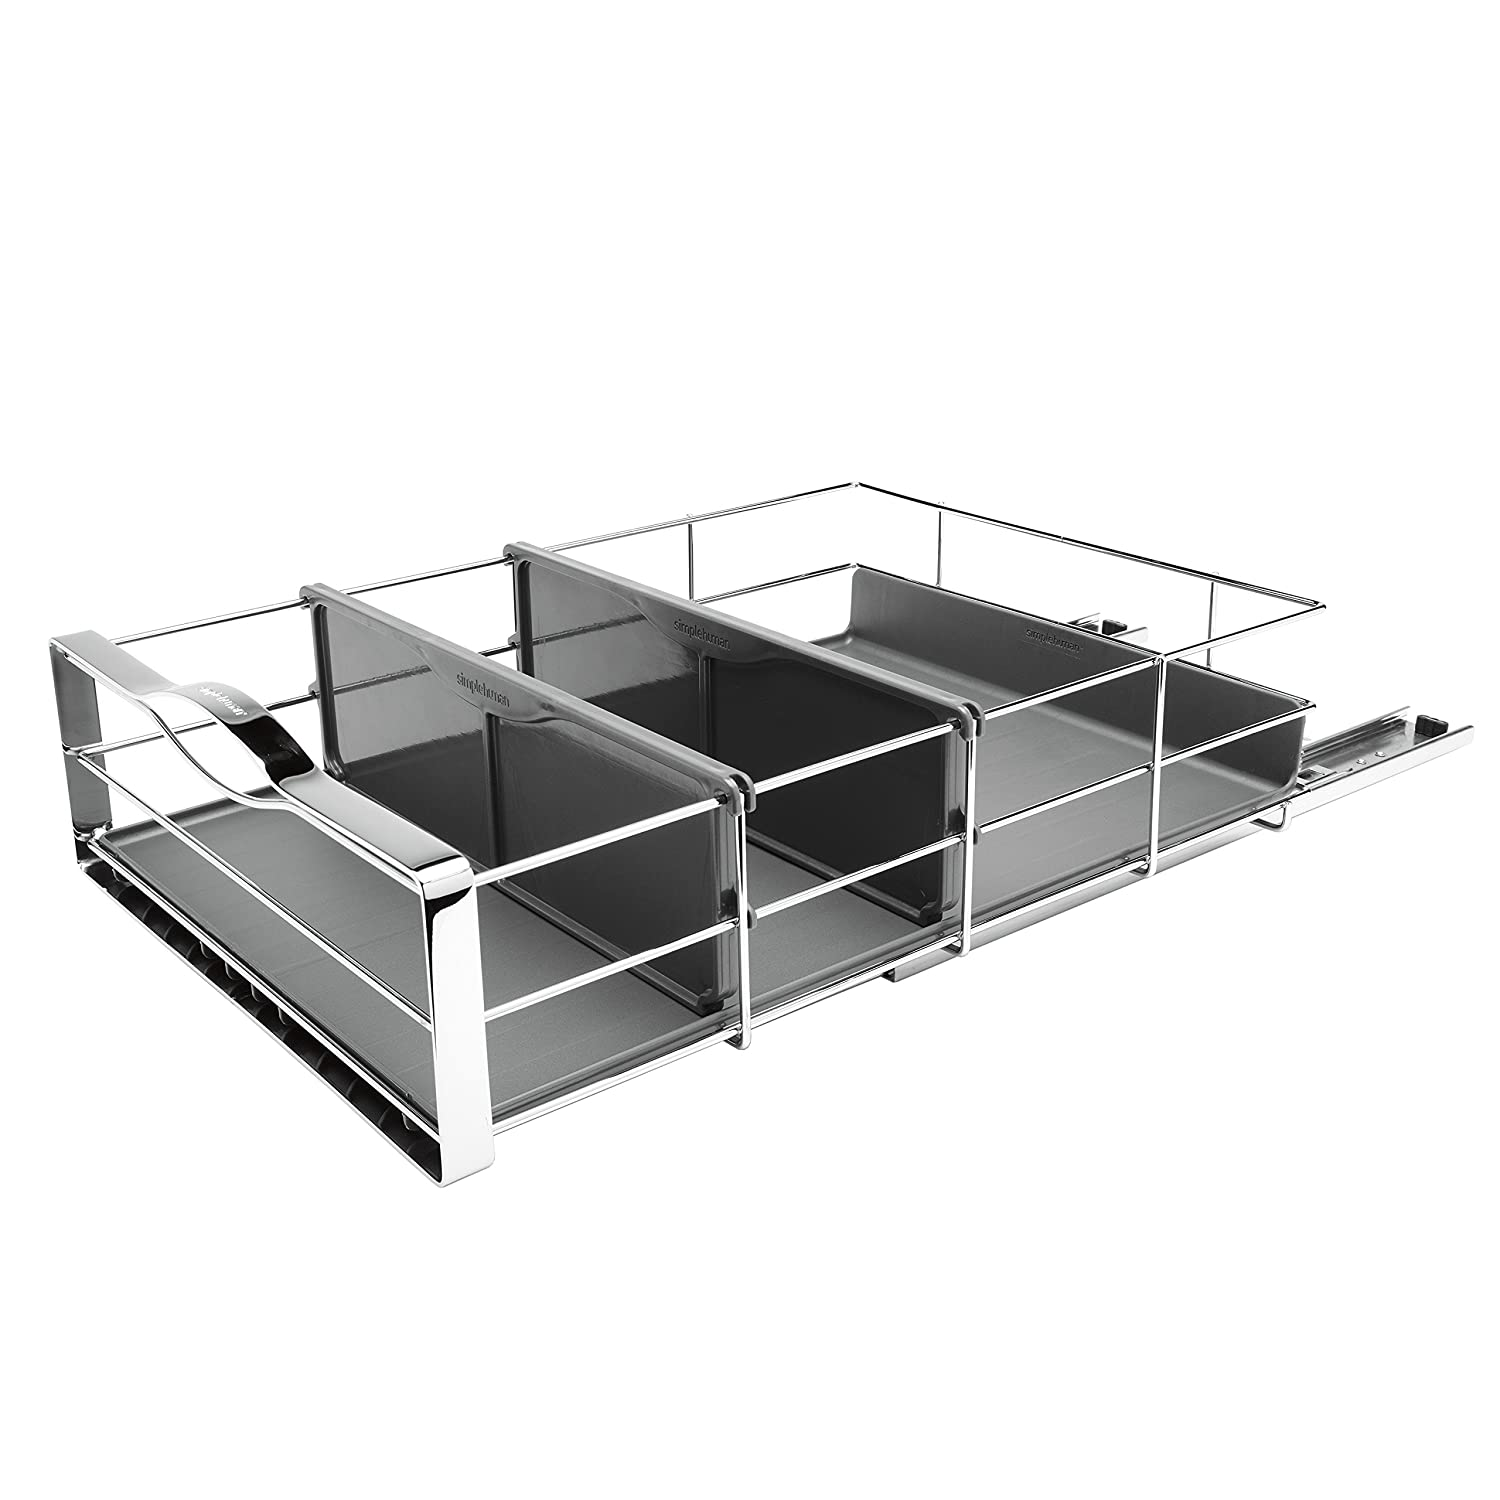 simplehuman 14 inch Pull-Out Cabinet Organizer, Heavy-Gauge Steel Frame